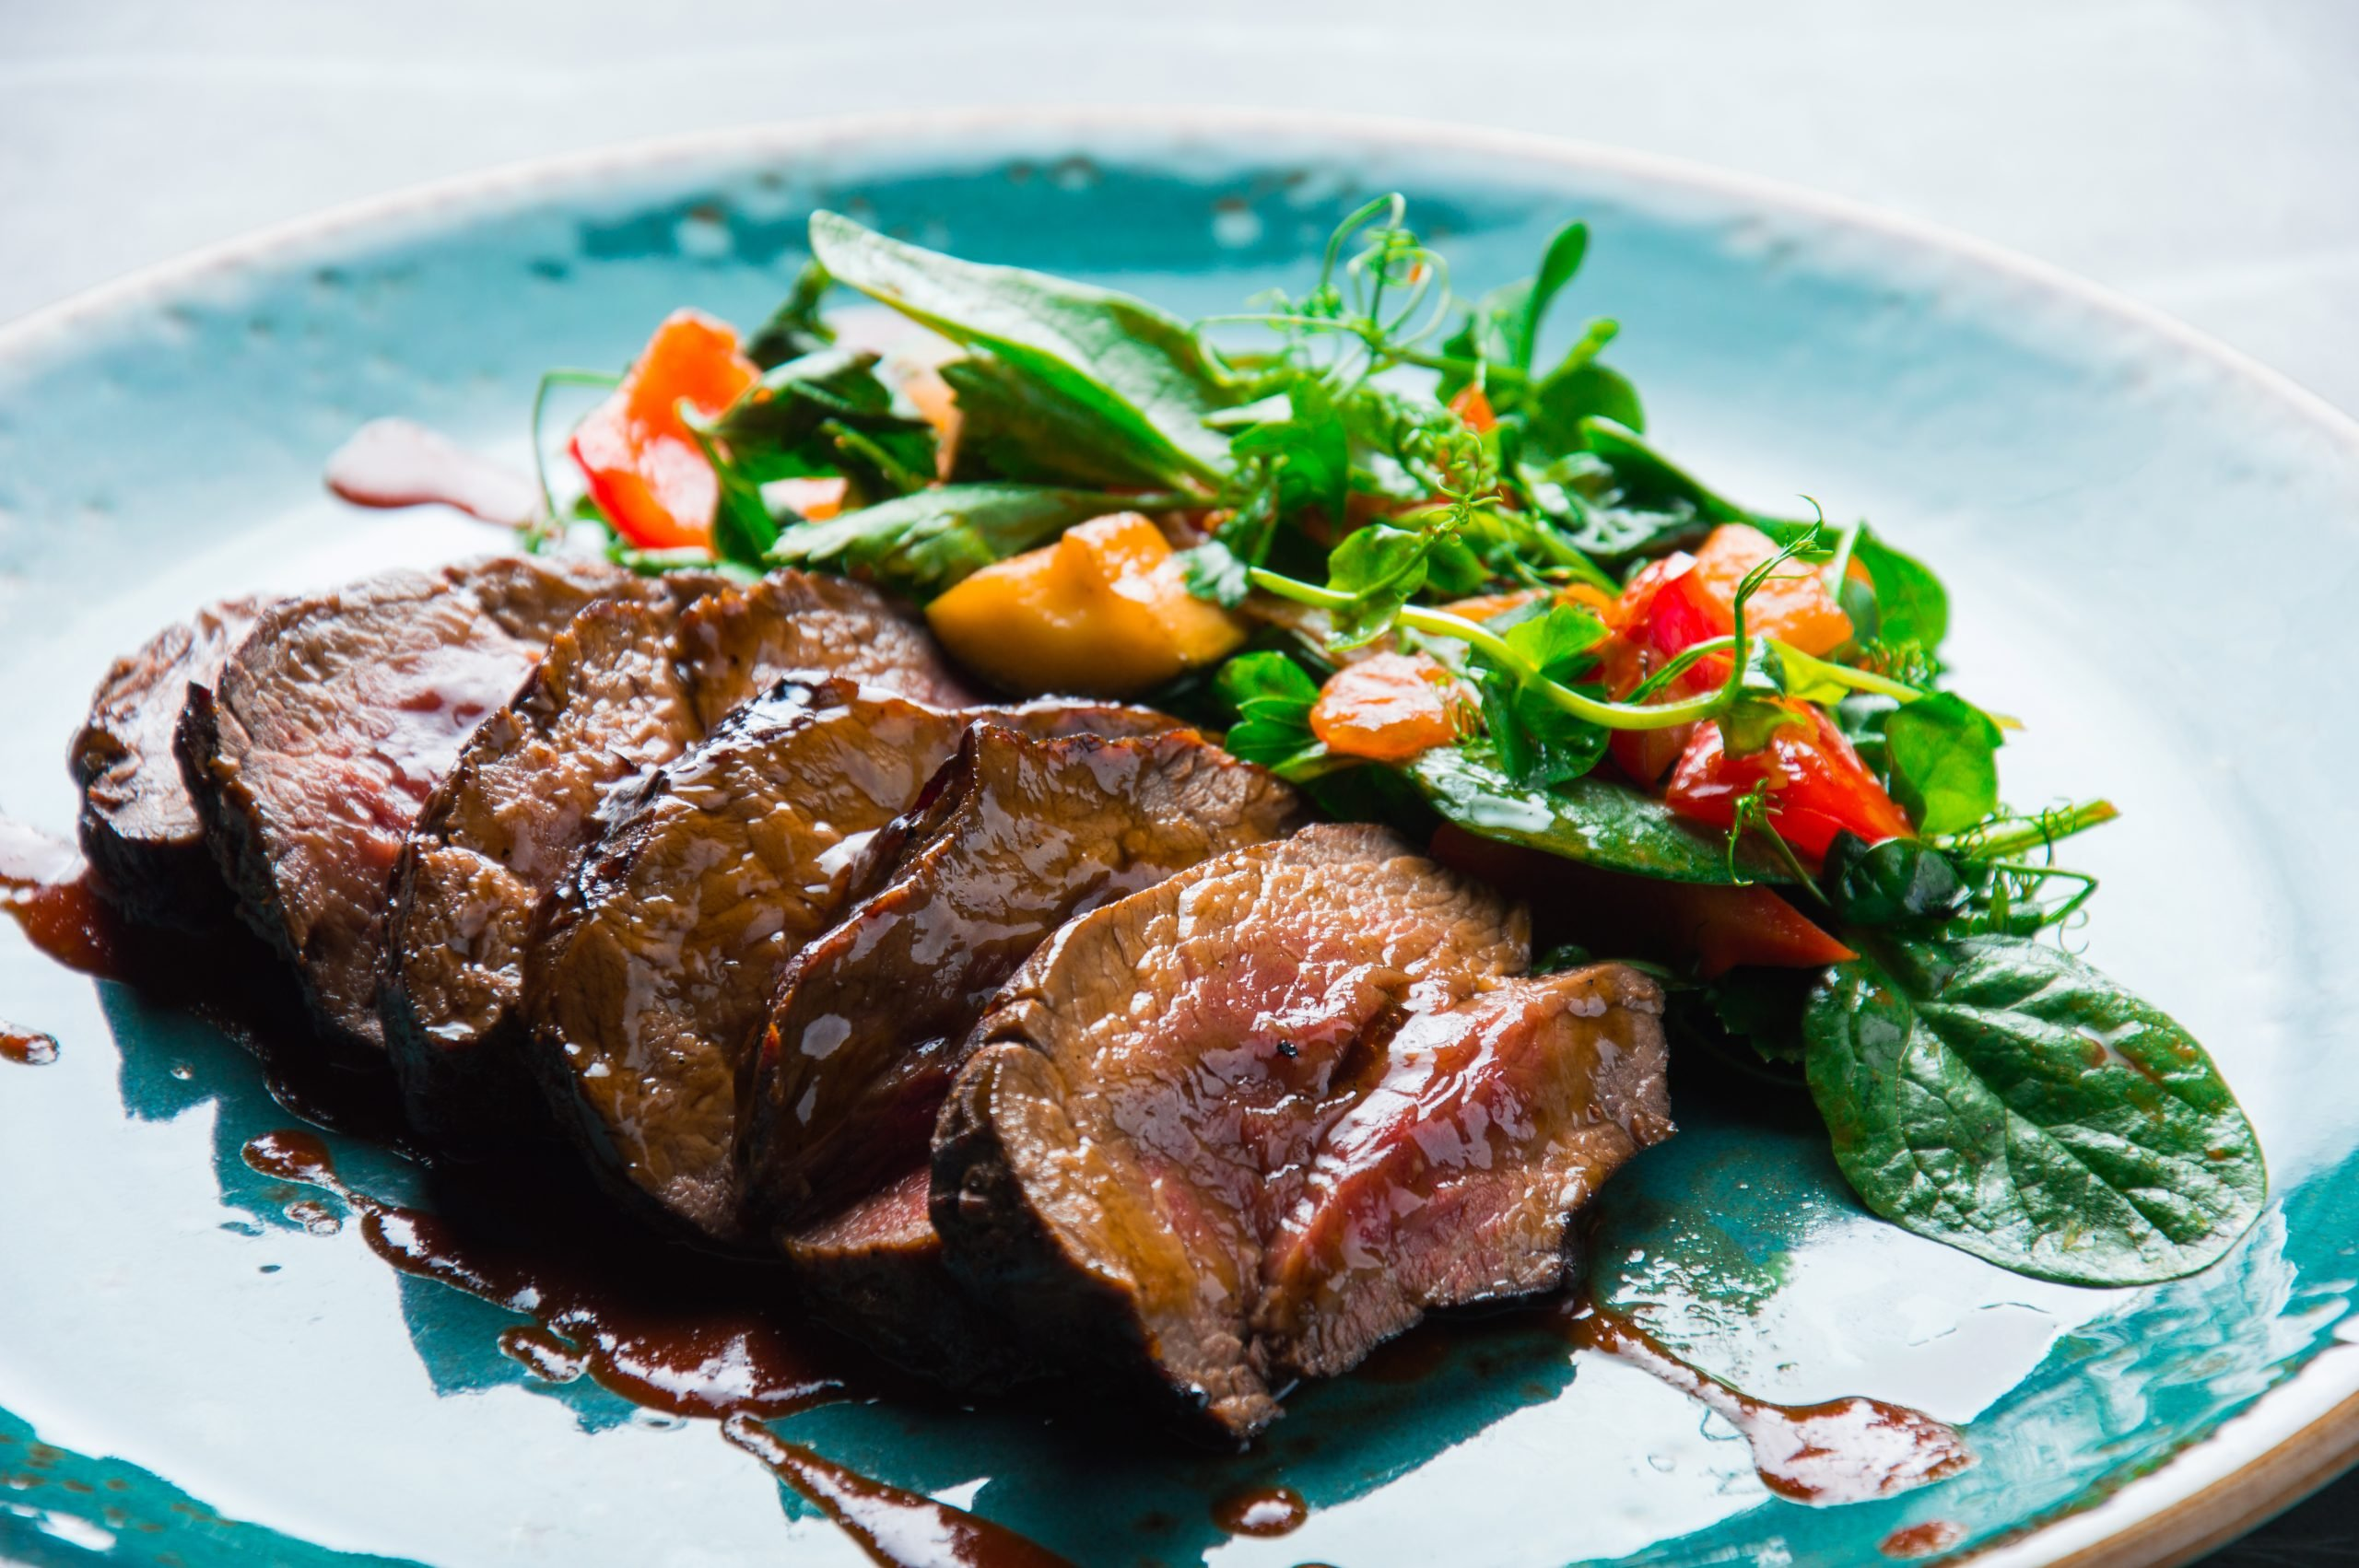 Wines and Gourmet Foods Center, BBQ steak with salad